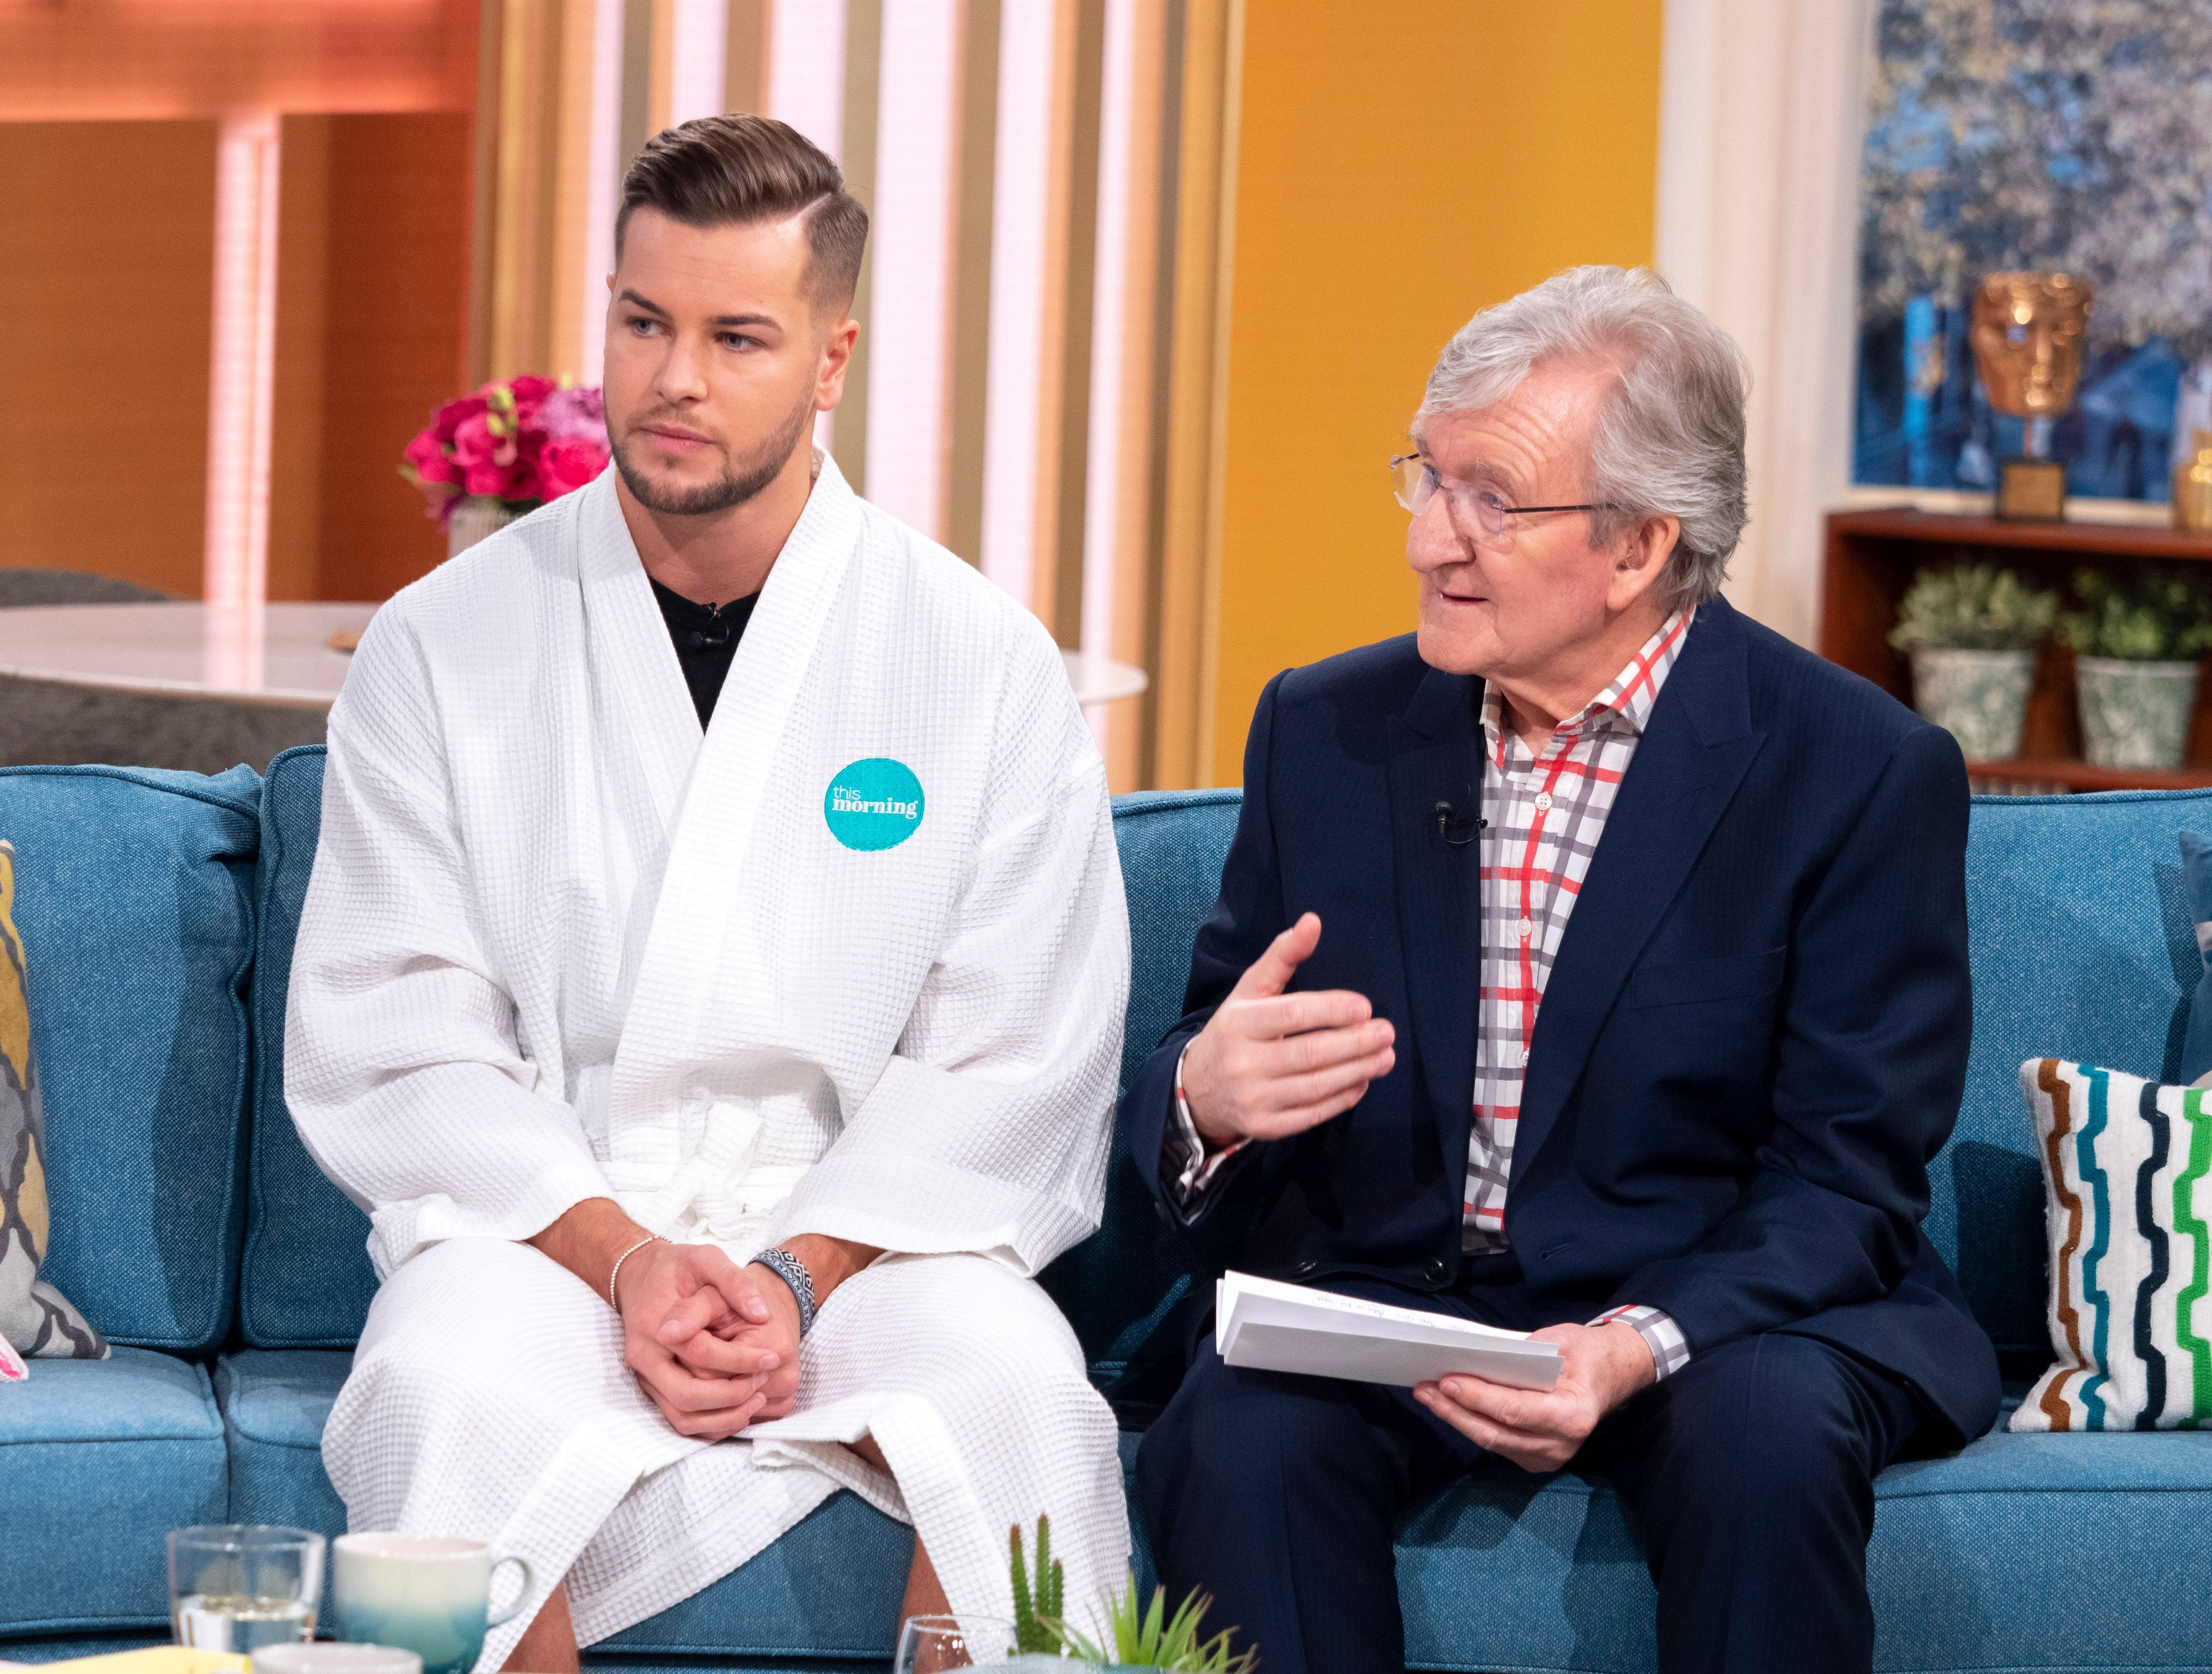 Love Island's Chris Hughes Wins Praise After Undergoing Live Testicular Exam On 'This